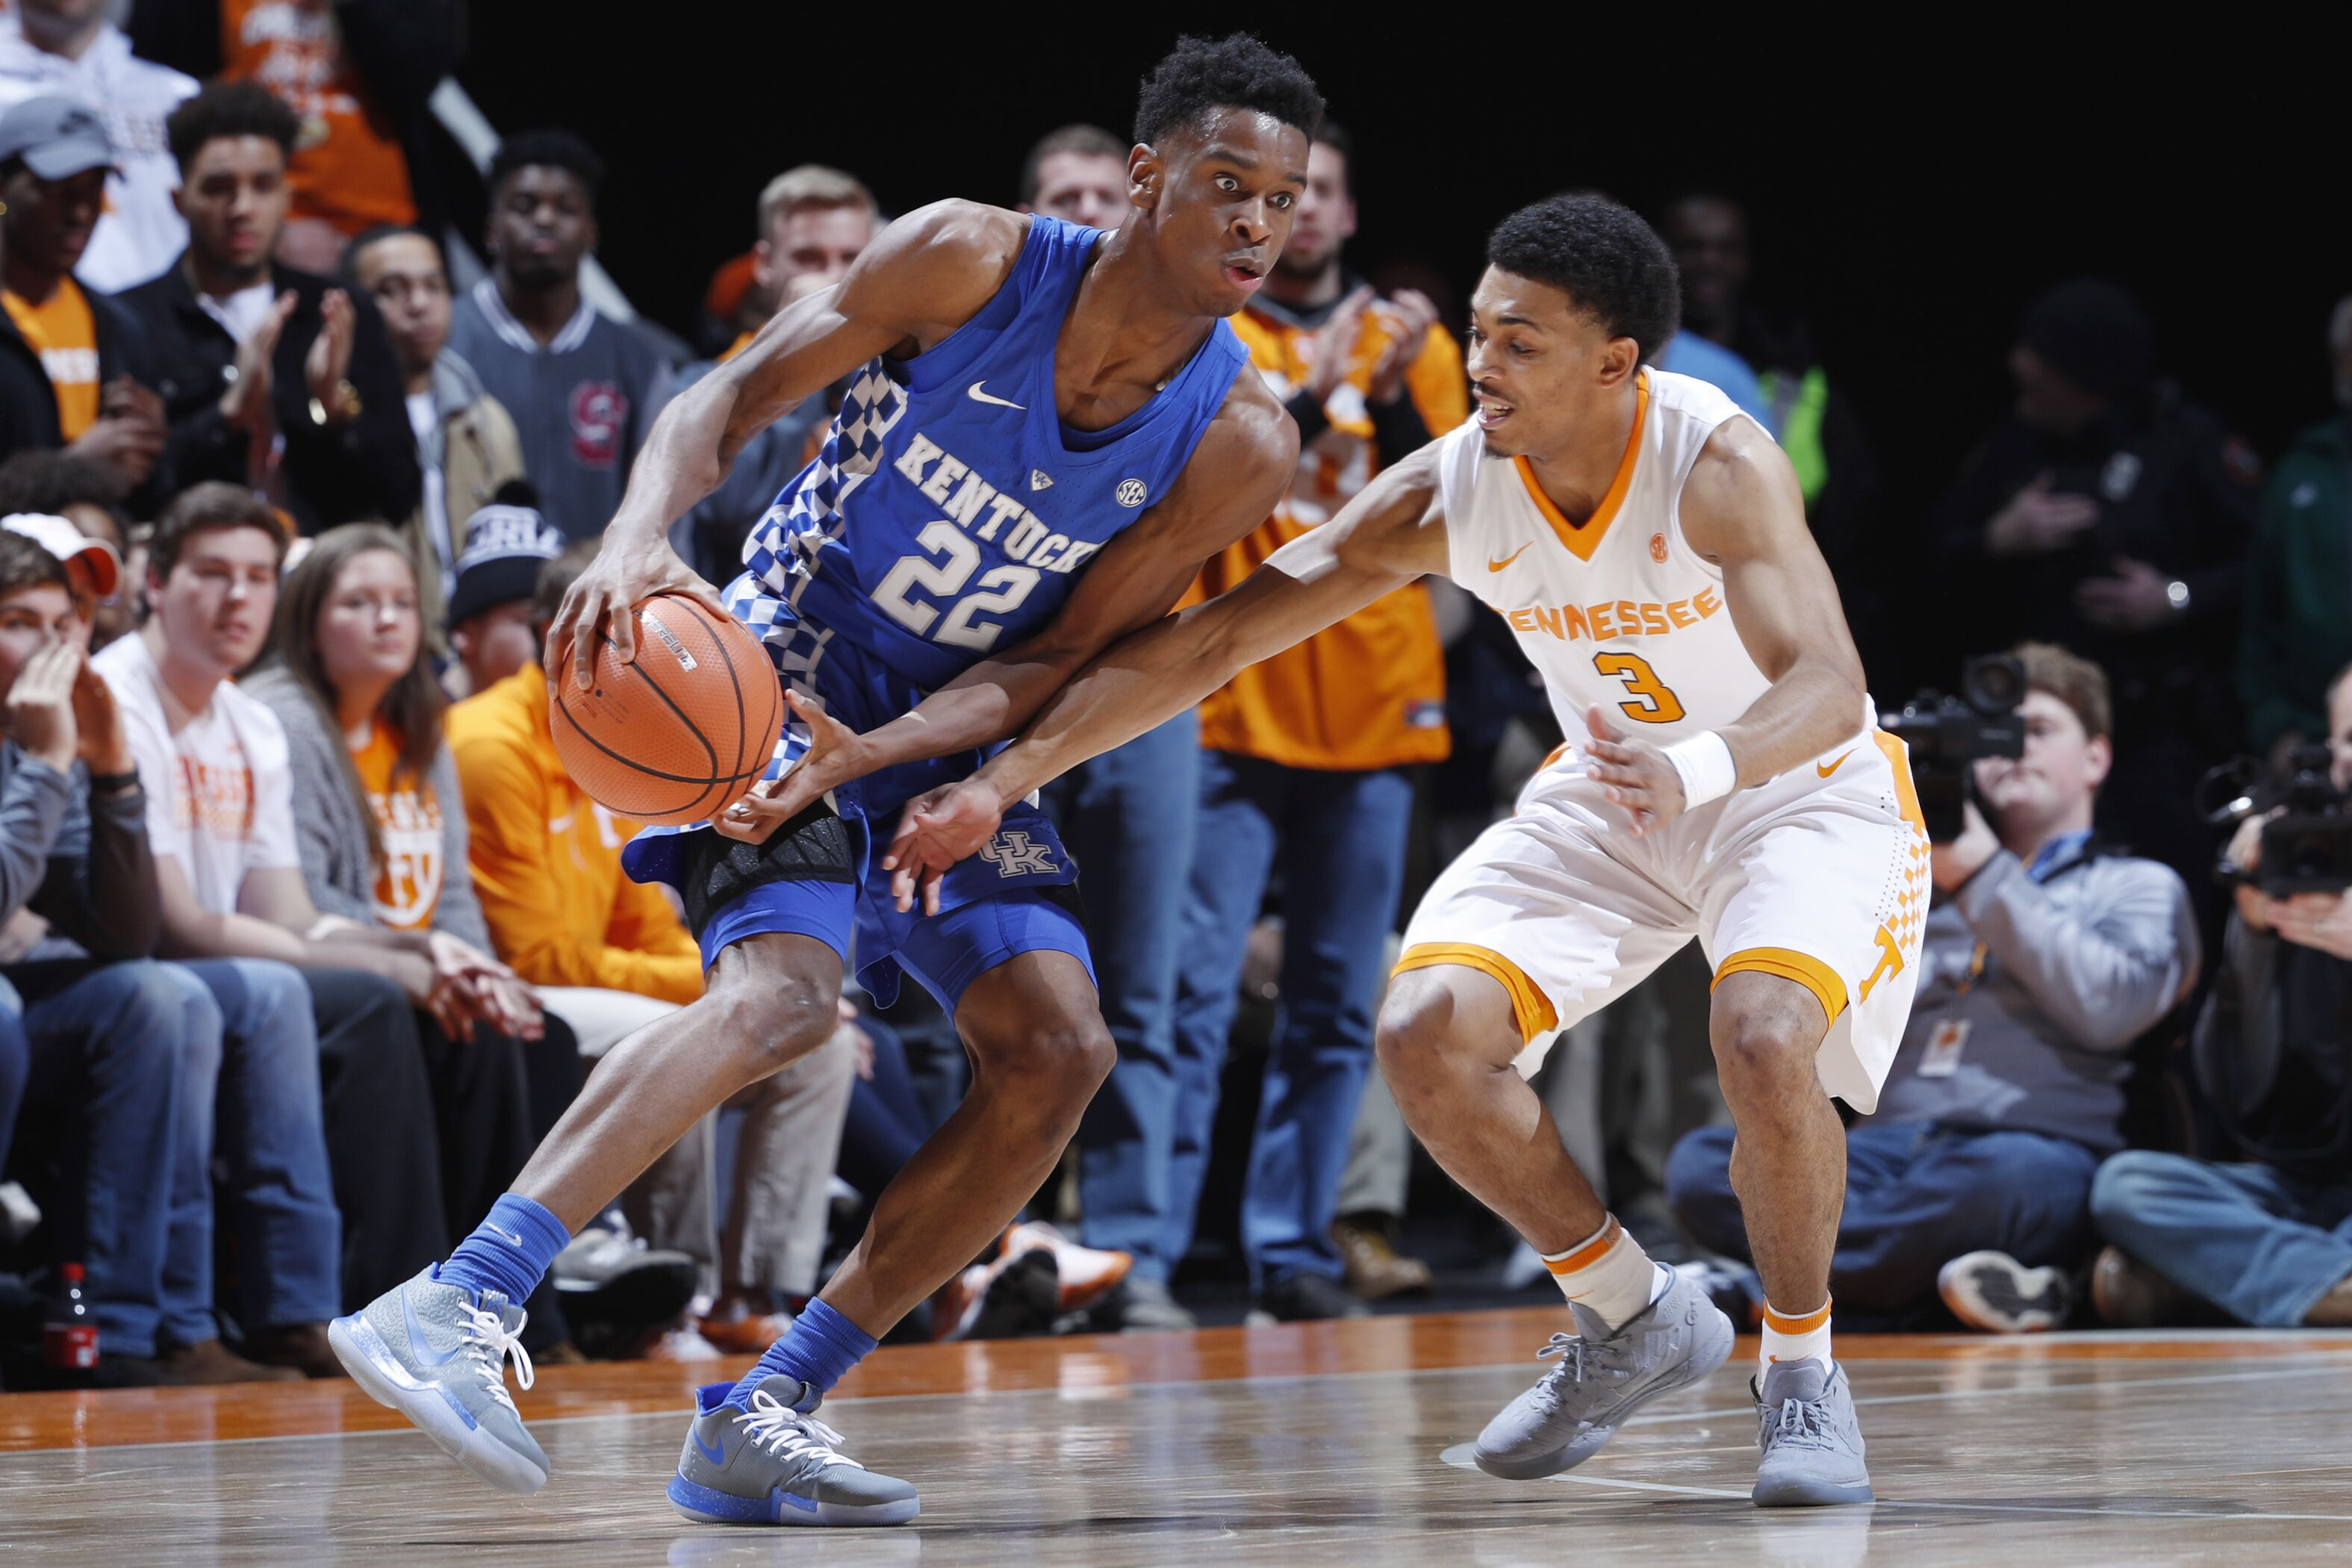 Uk Basketball Uk Vs Tenn: Game Recap: Foul Trouble And Bad Defense Doom Kentucky